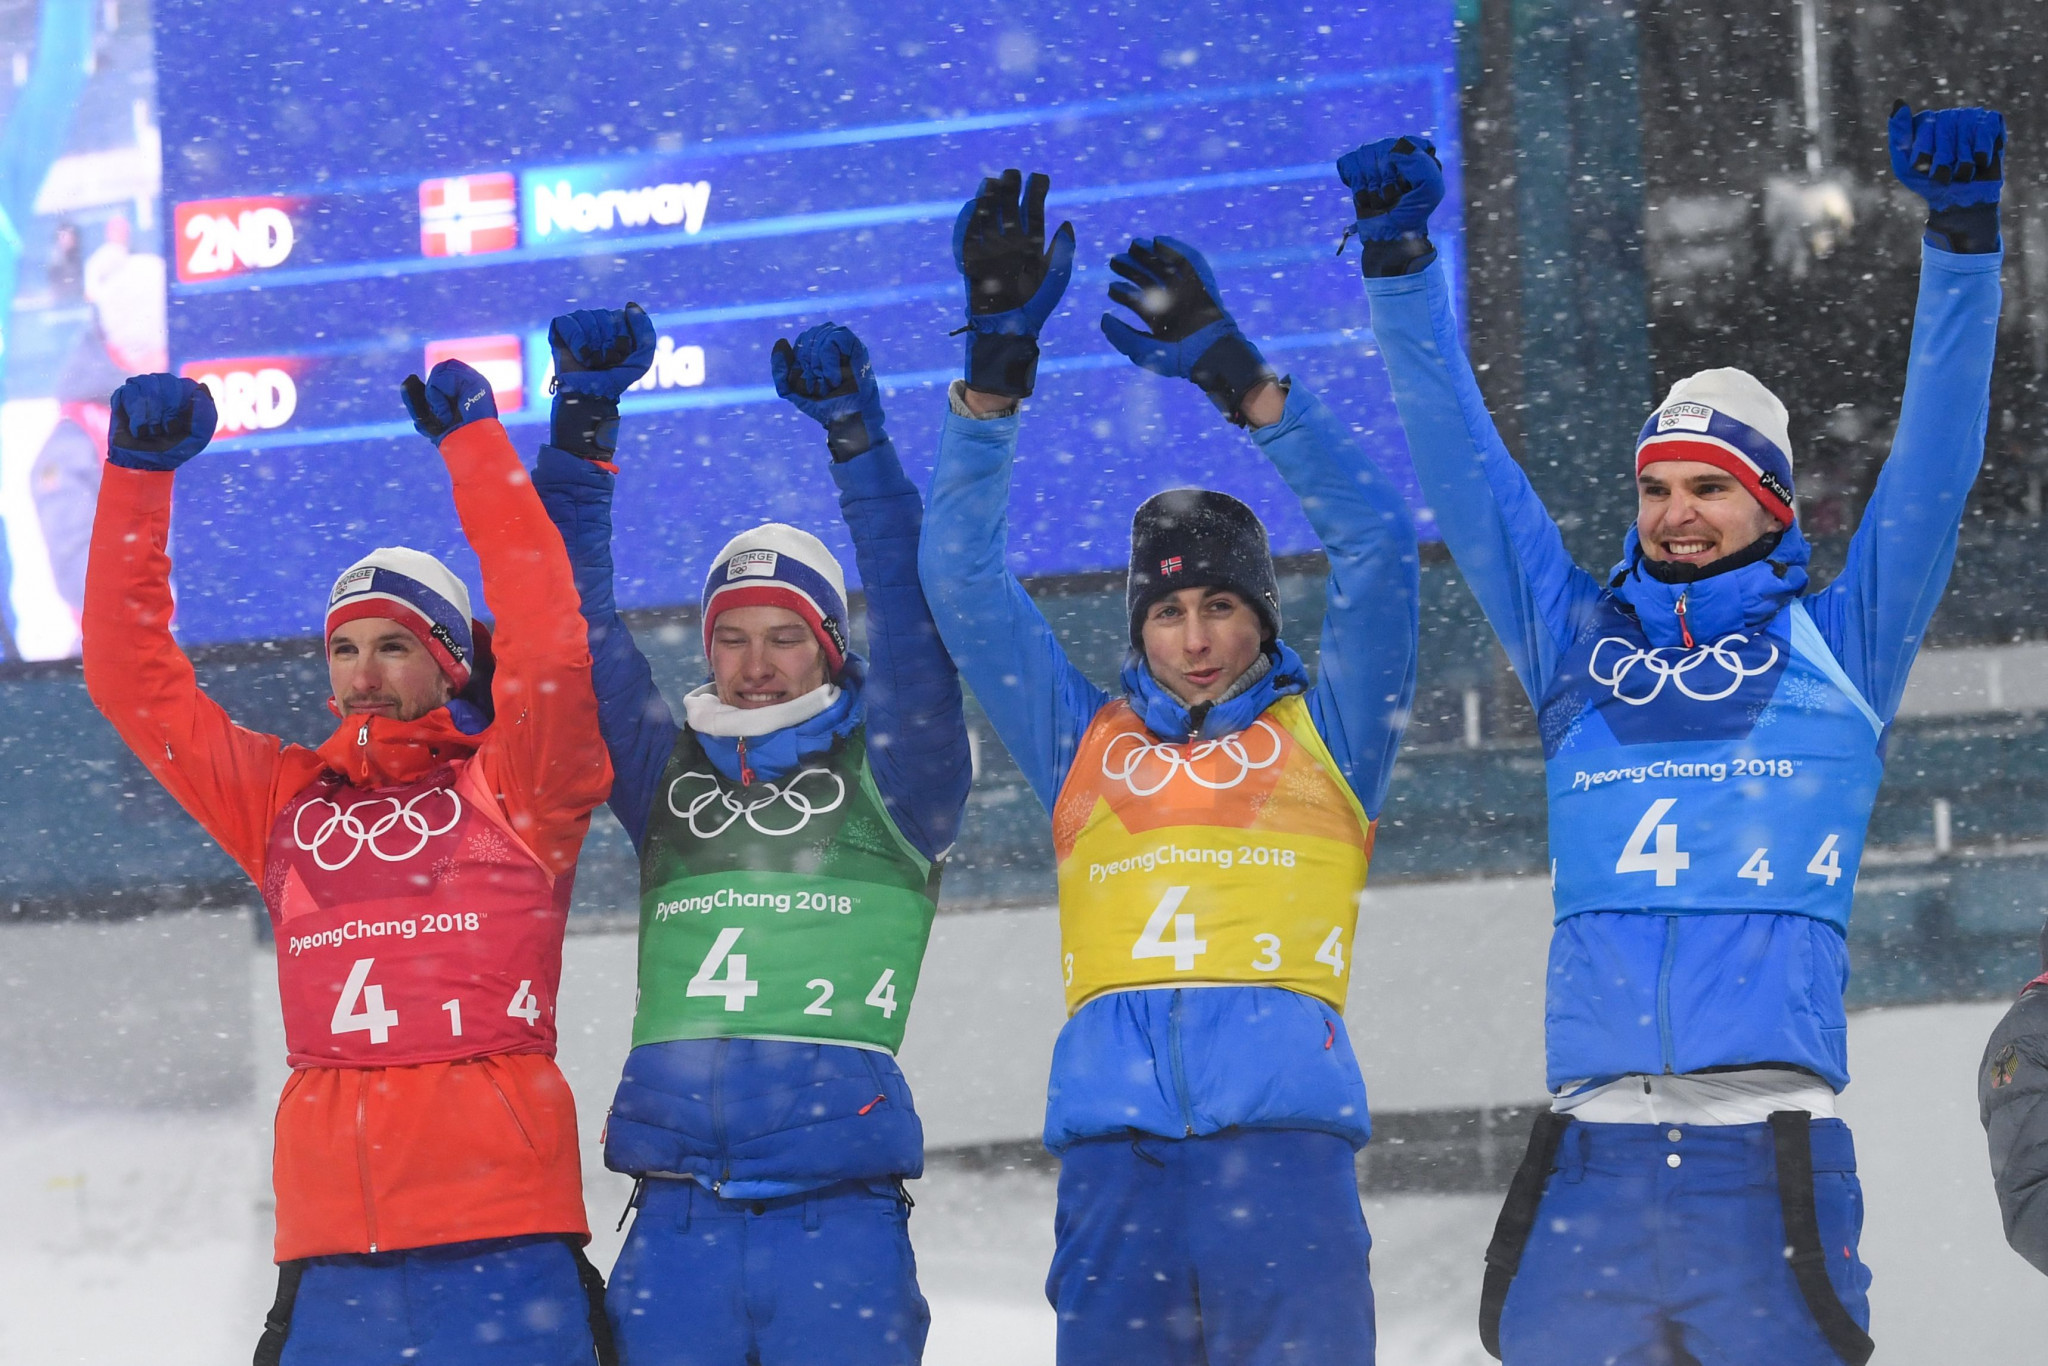 Norway medalled in Nordic combined at the Pyeongchang 2018 Winter Olympic Games, winning silver in the men's team relay 4x5km event ©Getty Images